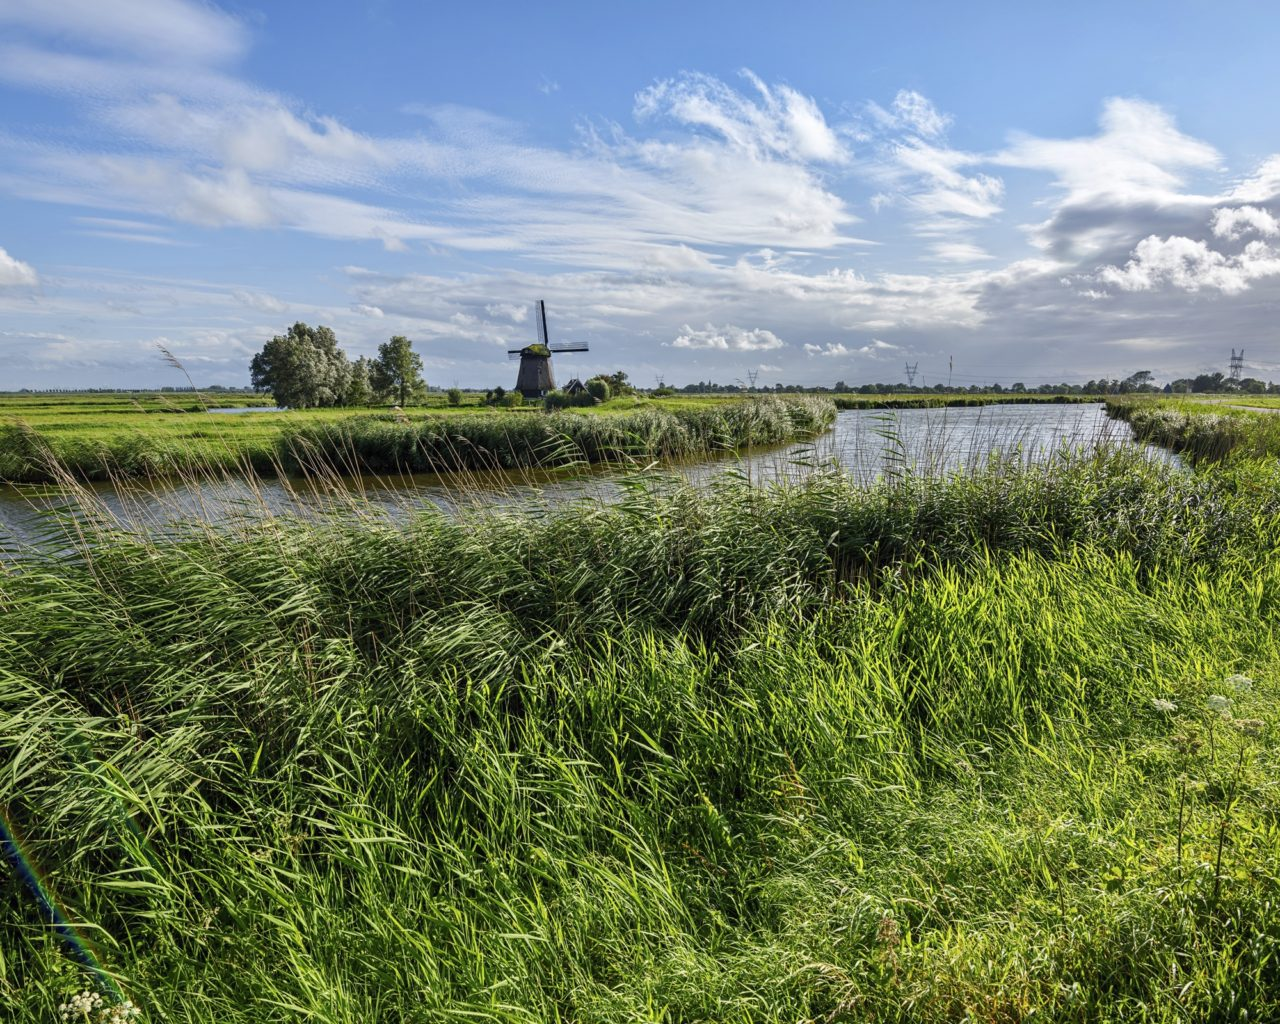 Fall Landscape Wallpapers Free Netherlands Scenery Rivers Sky Edam Grass Nature 411328